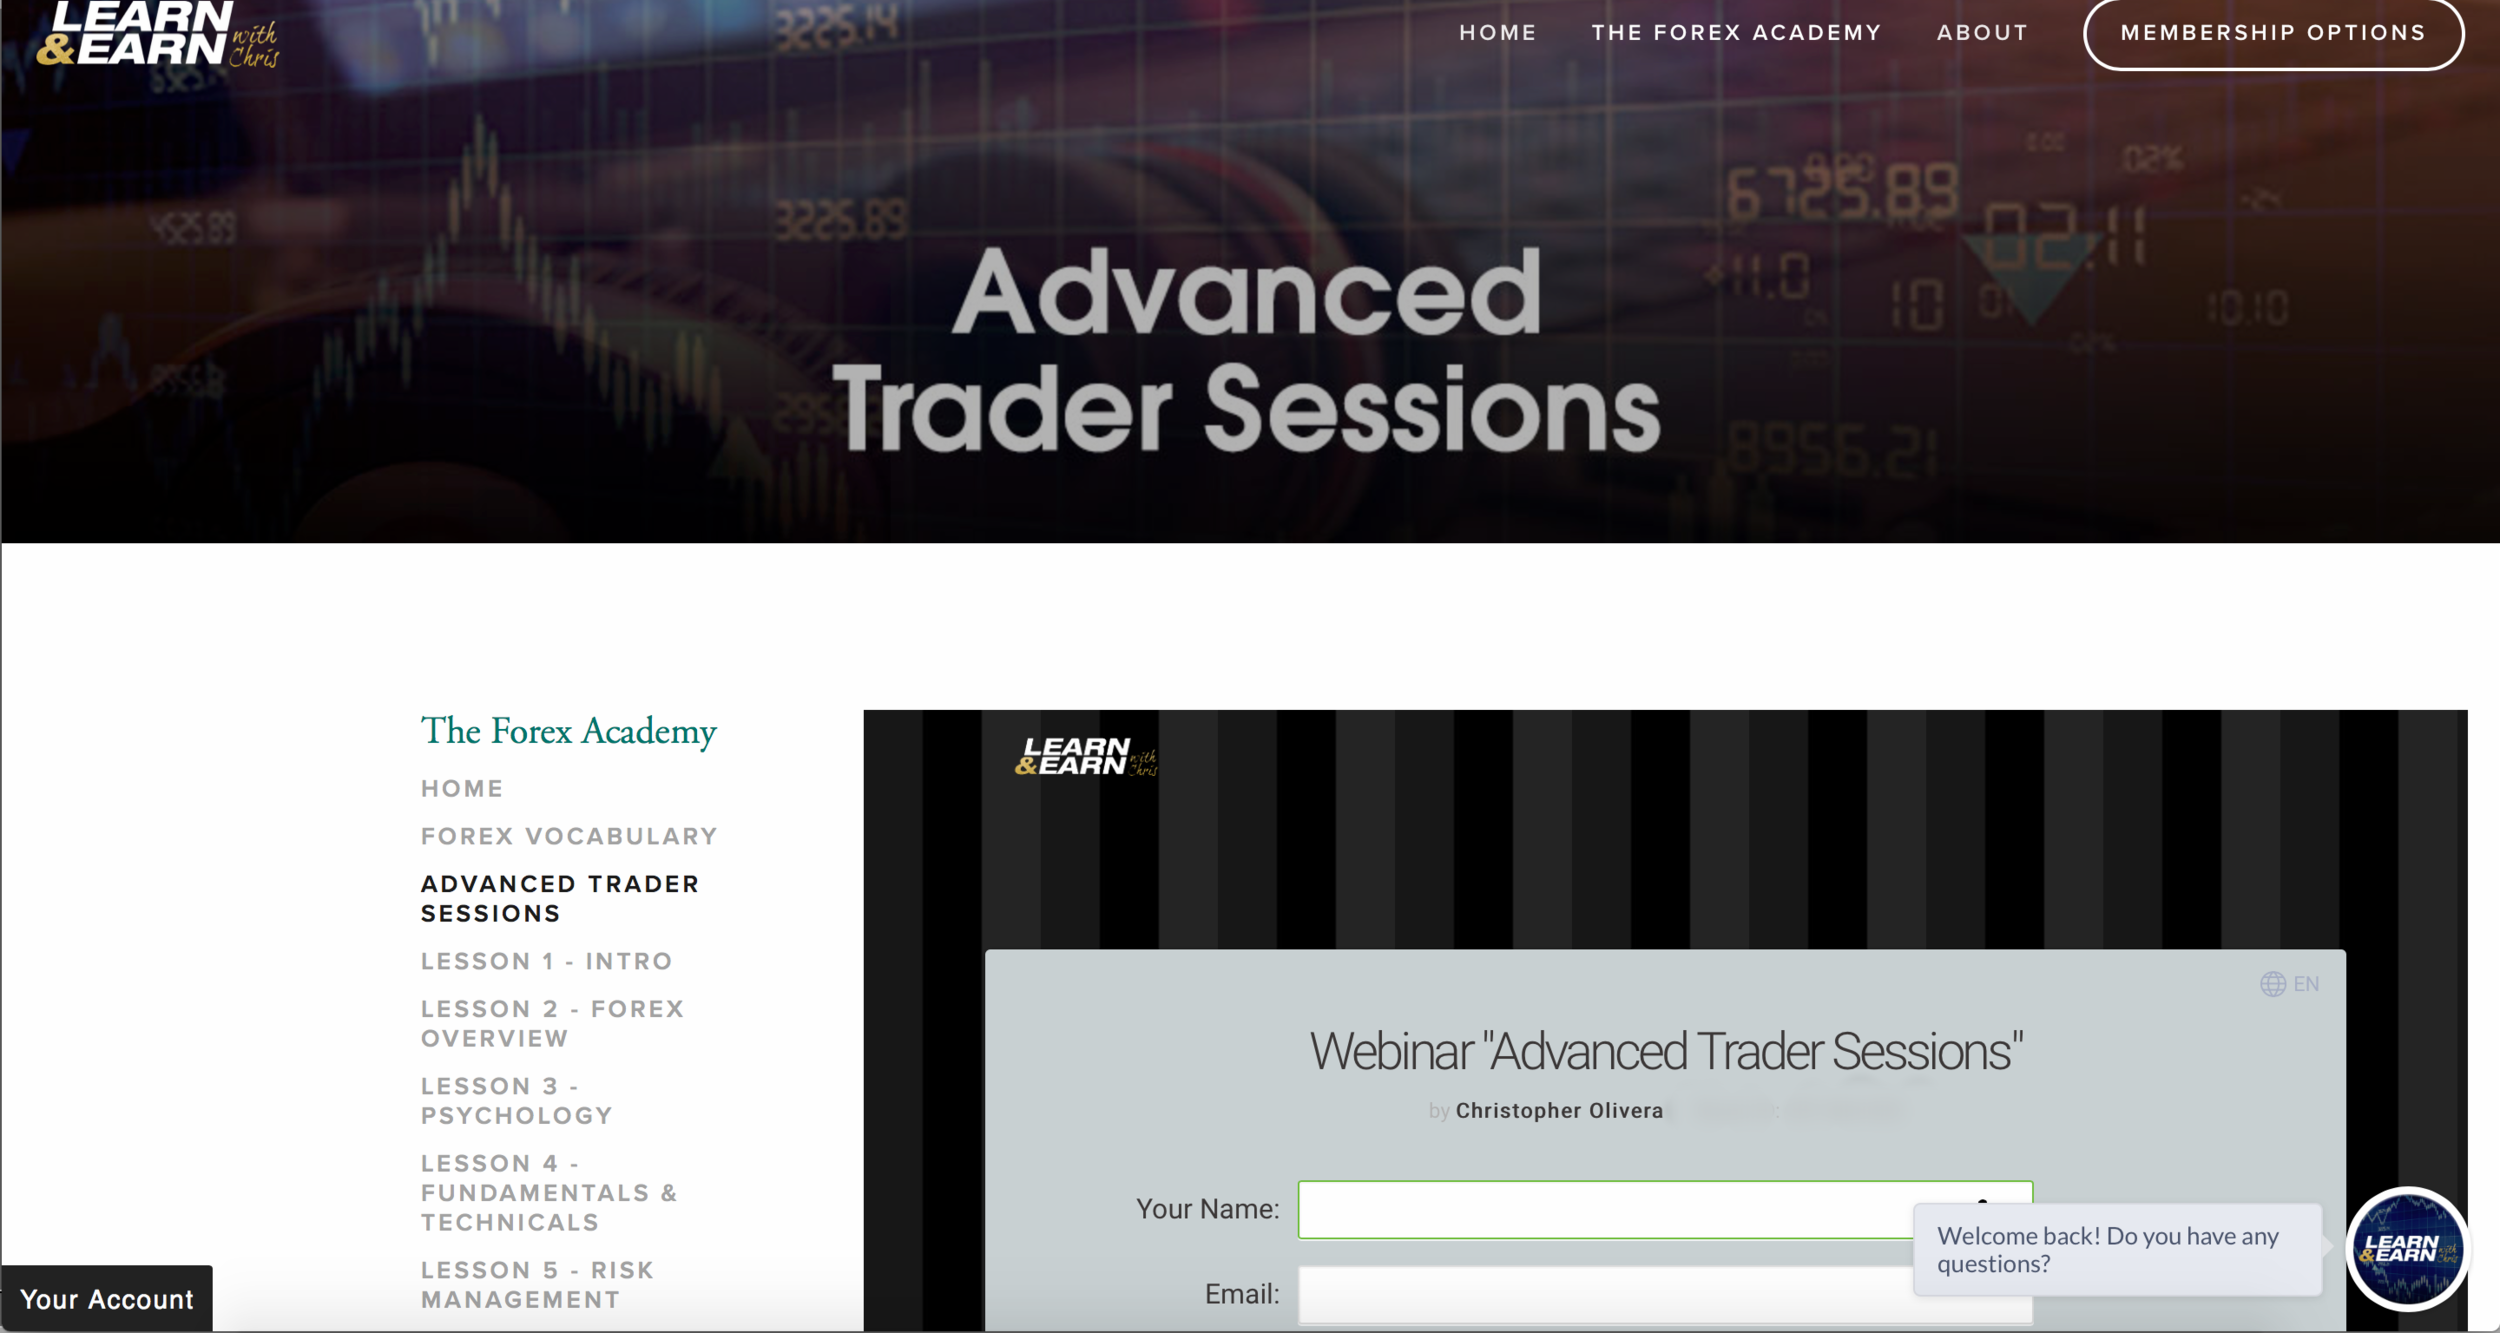 Advanced Trader Session - On a daily basis we hold webinars breaking down the market and showing you how we analyze certain currency pairs and commodeties live.This enables students to raise any questions or concerns throughout and after the live session during our Q&A period. Each of these sessions is uploaded into the Training Videos page shortly after it finishes.